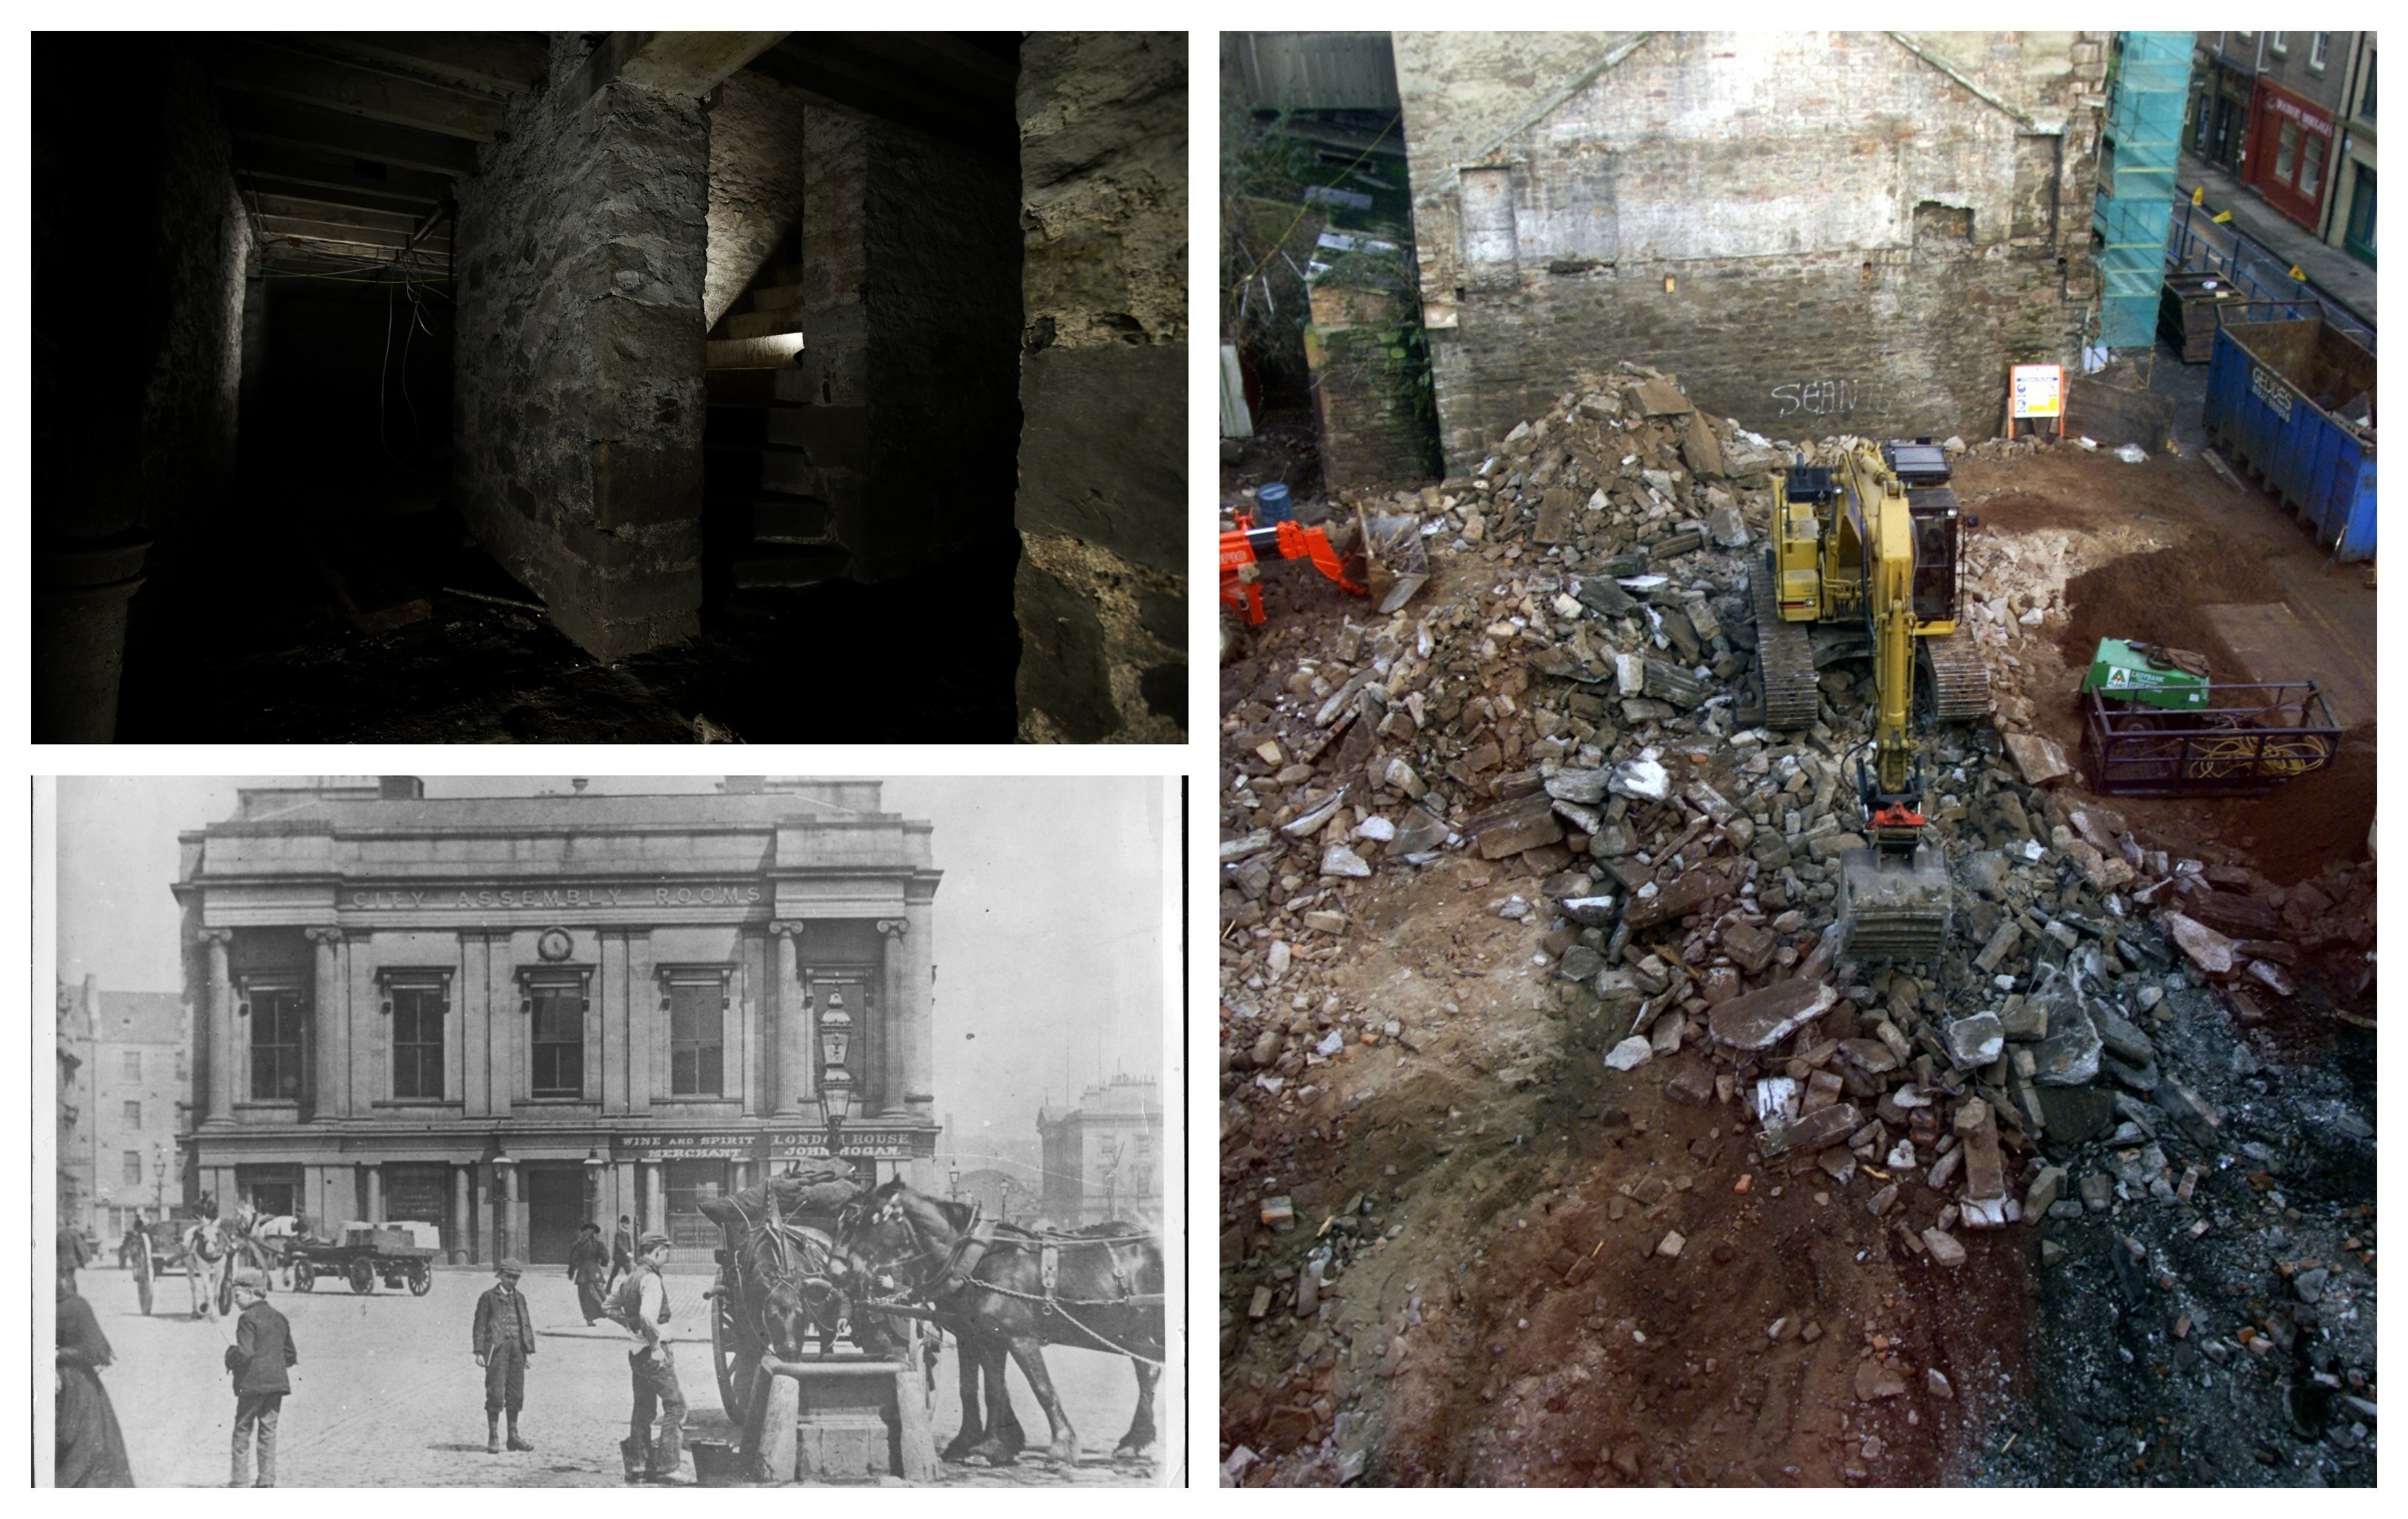 Right - The scene on the Exchange Street construction site on November 27 2000 when the vaults (top left) were first unearthed after some 250 years. Bottom left shows Dundee's Exchange Street area in days gone by.